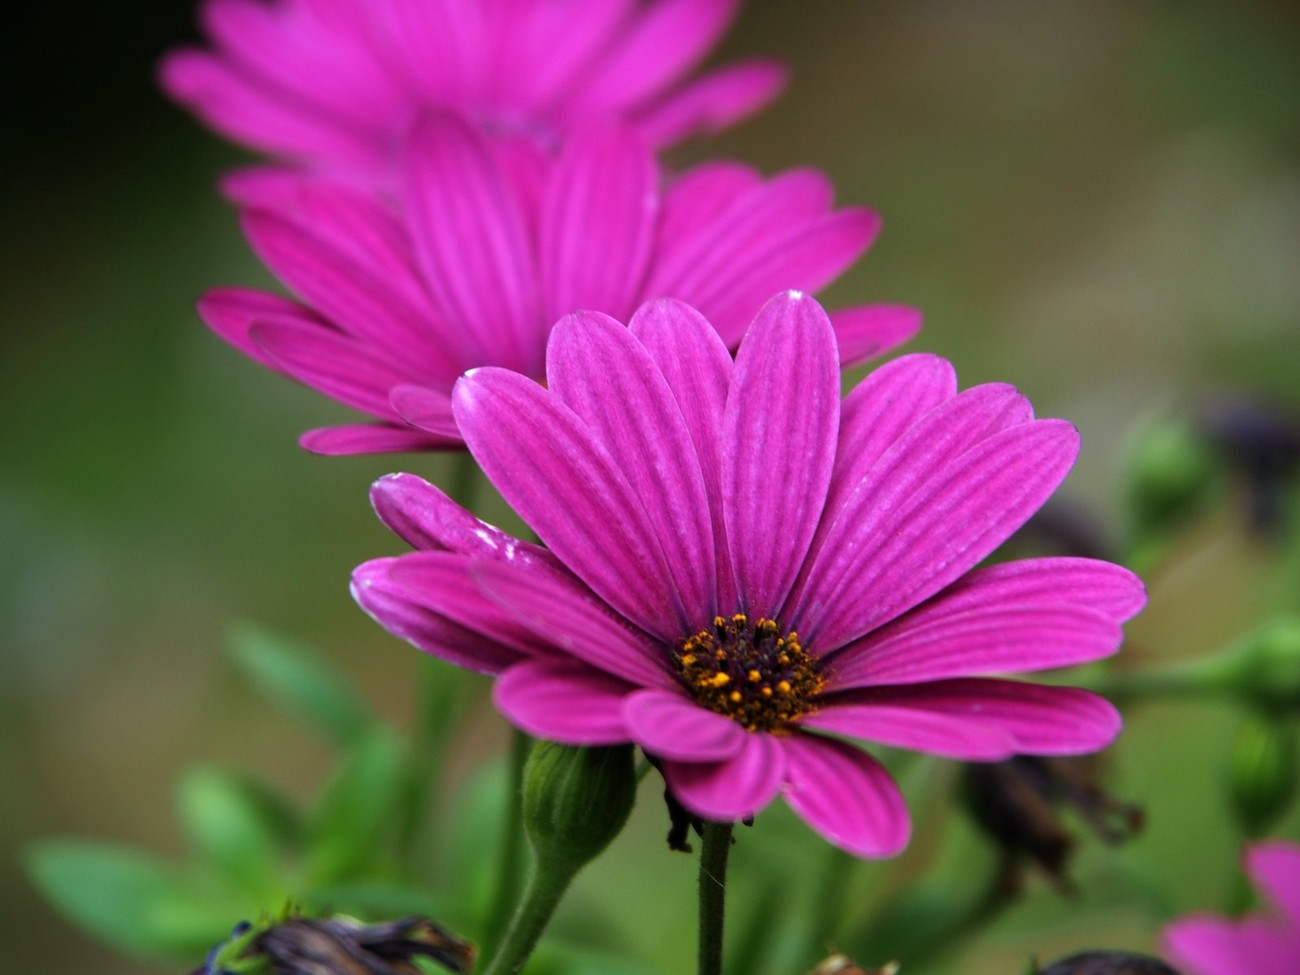 just playing around with macro bokeh on flowers and this nice line of purple daisy's